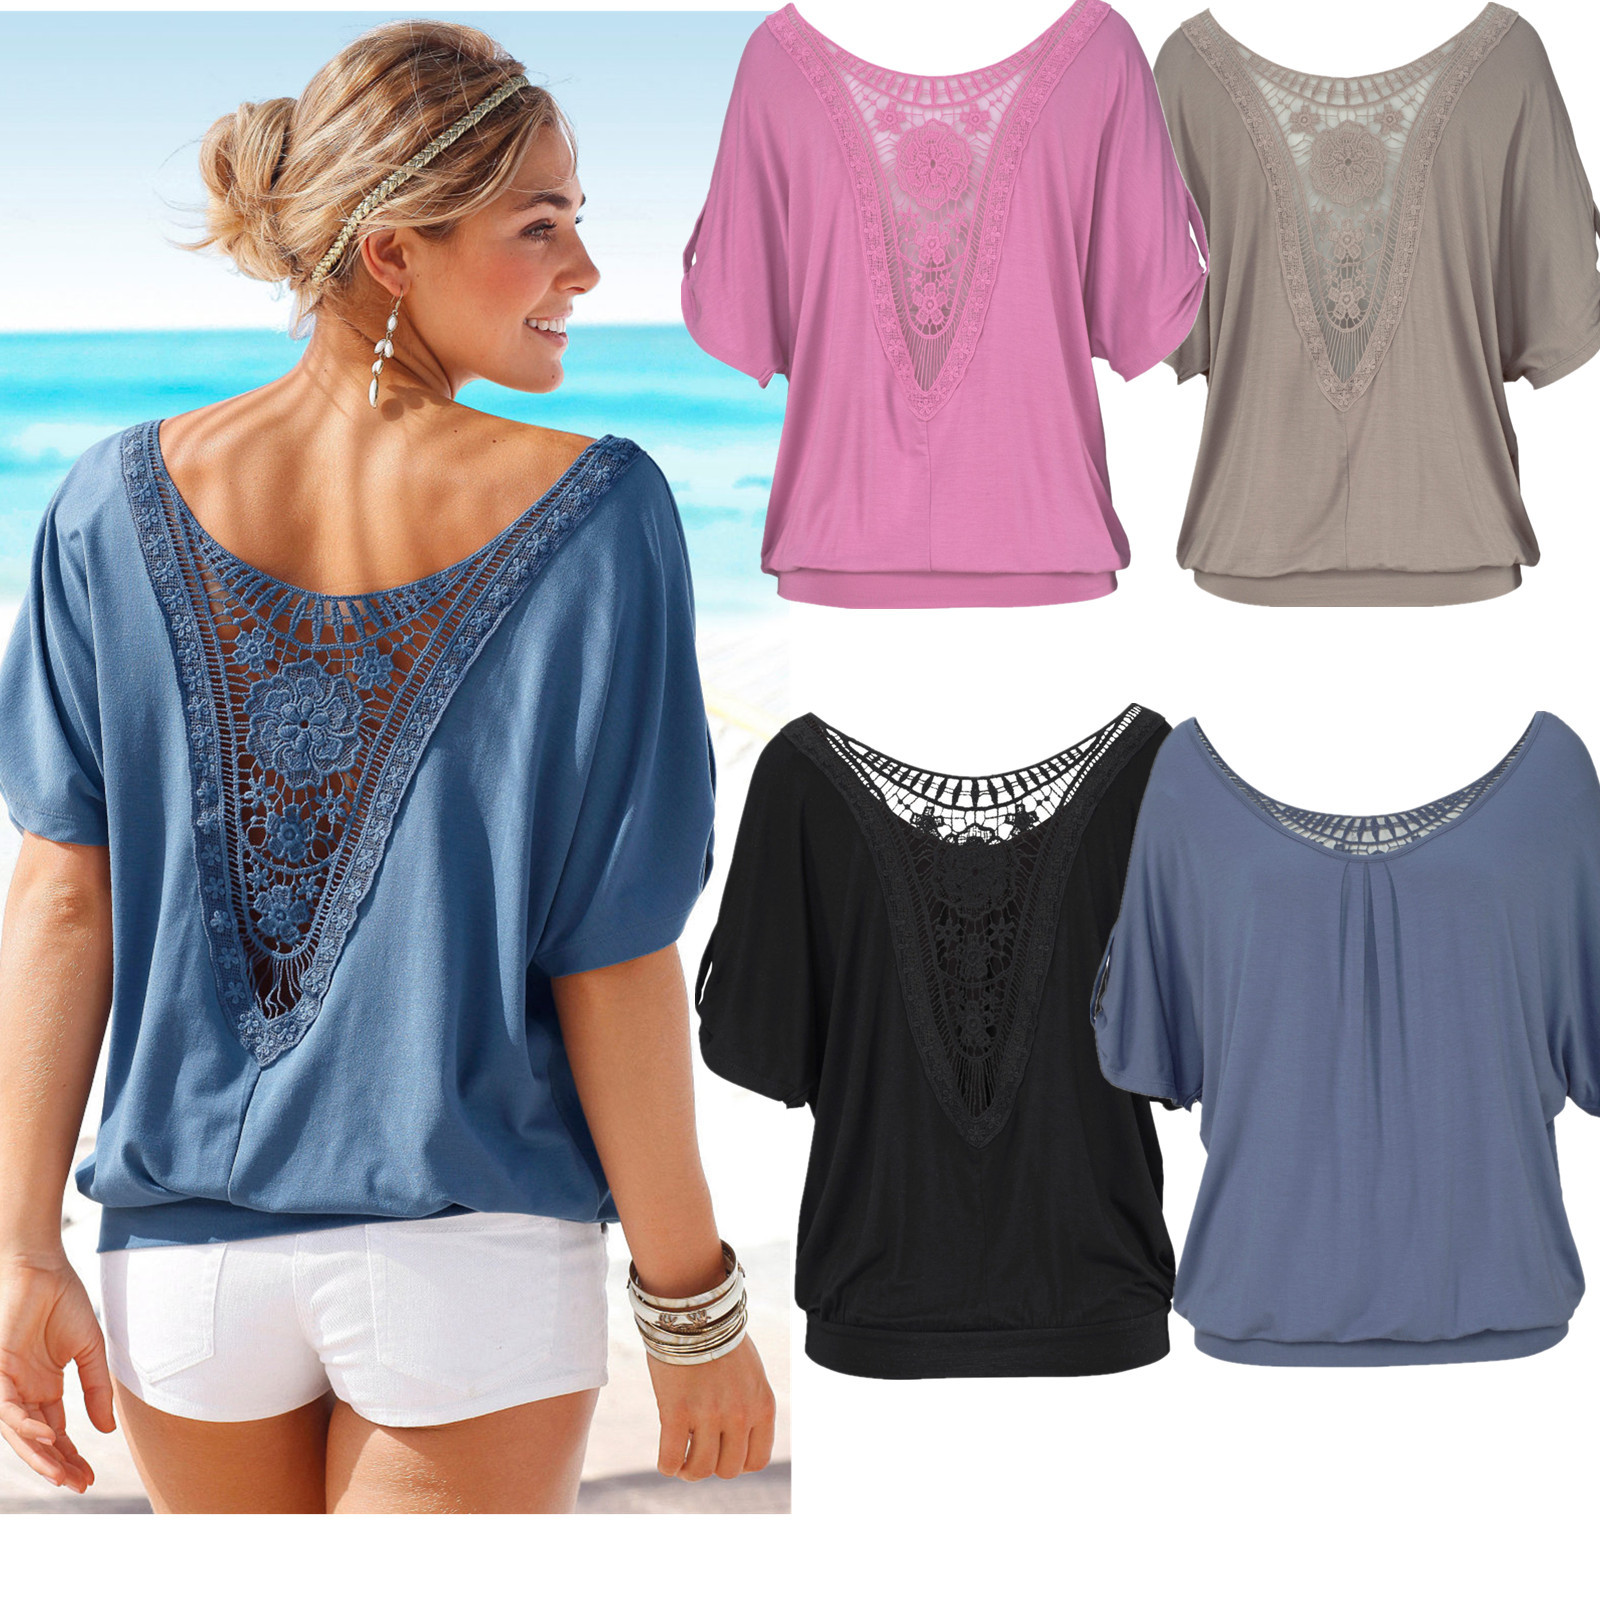 2017 Womens Summer New Fashion loose sleeve T-shirt Lady Lace Sexy T-shirt